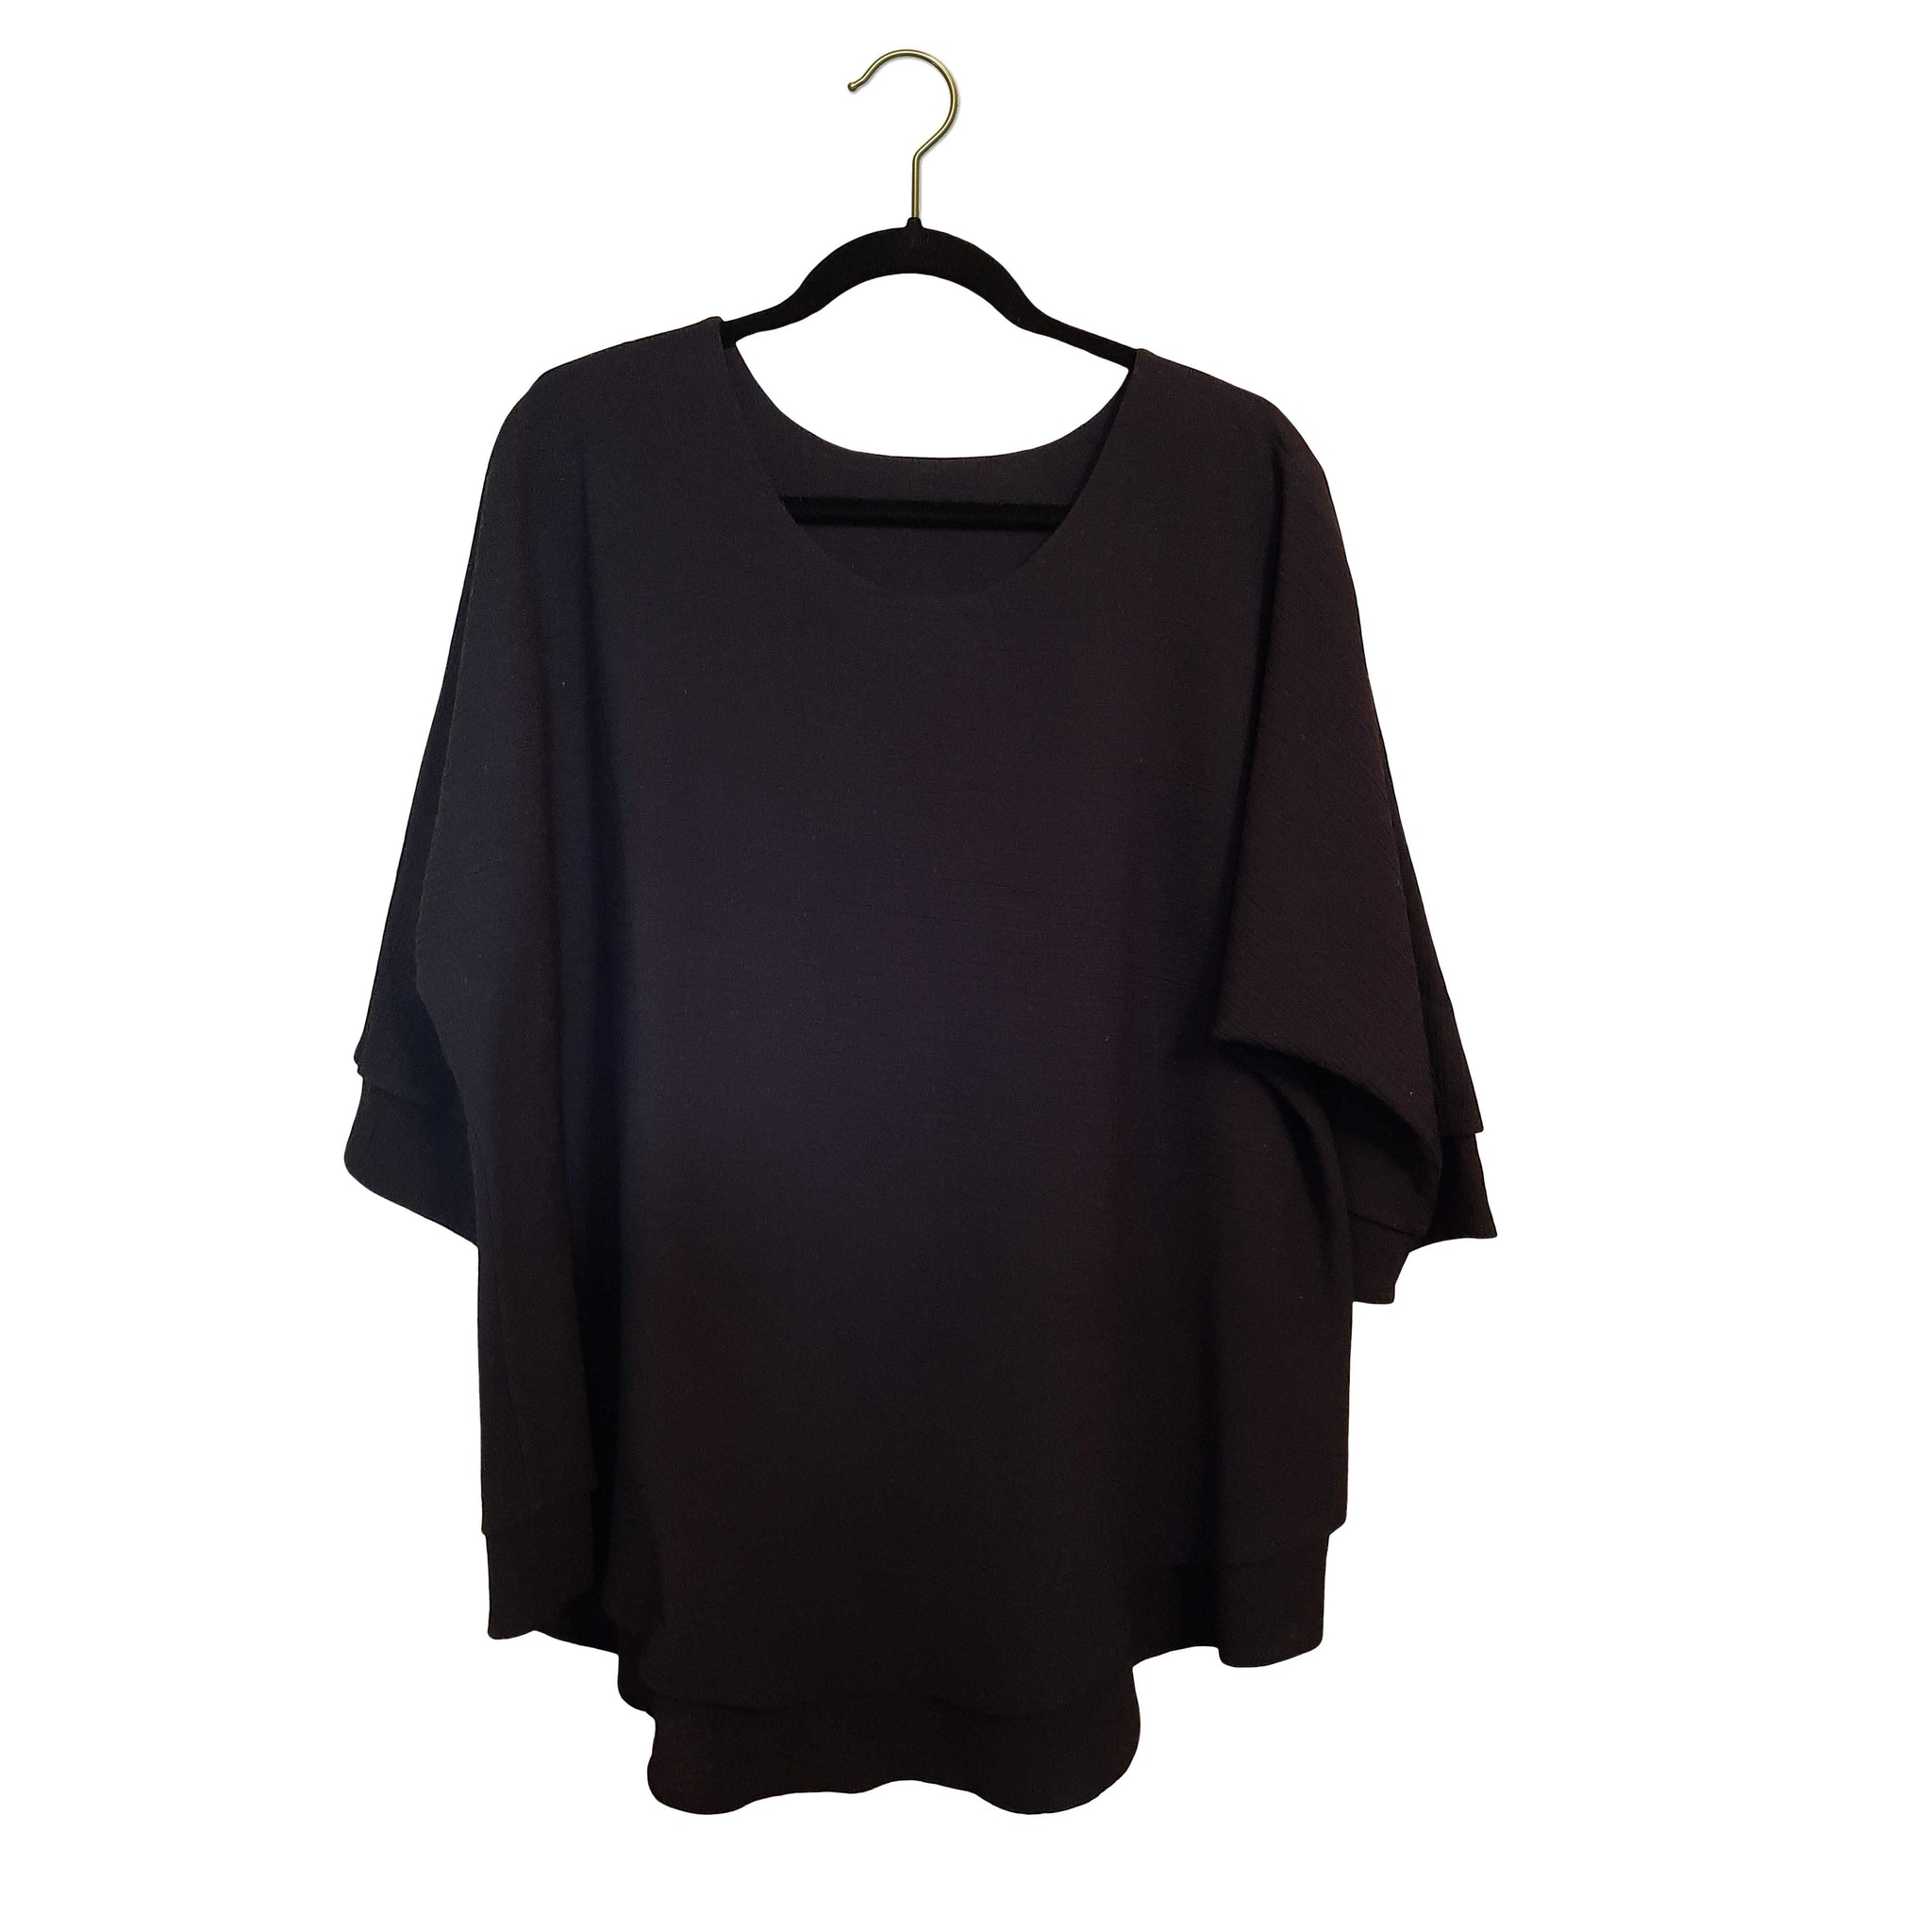 The Batwing #2: Tunic Crinkle Cotton Size L-XL